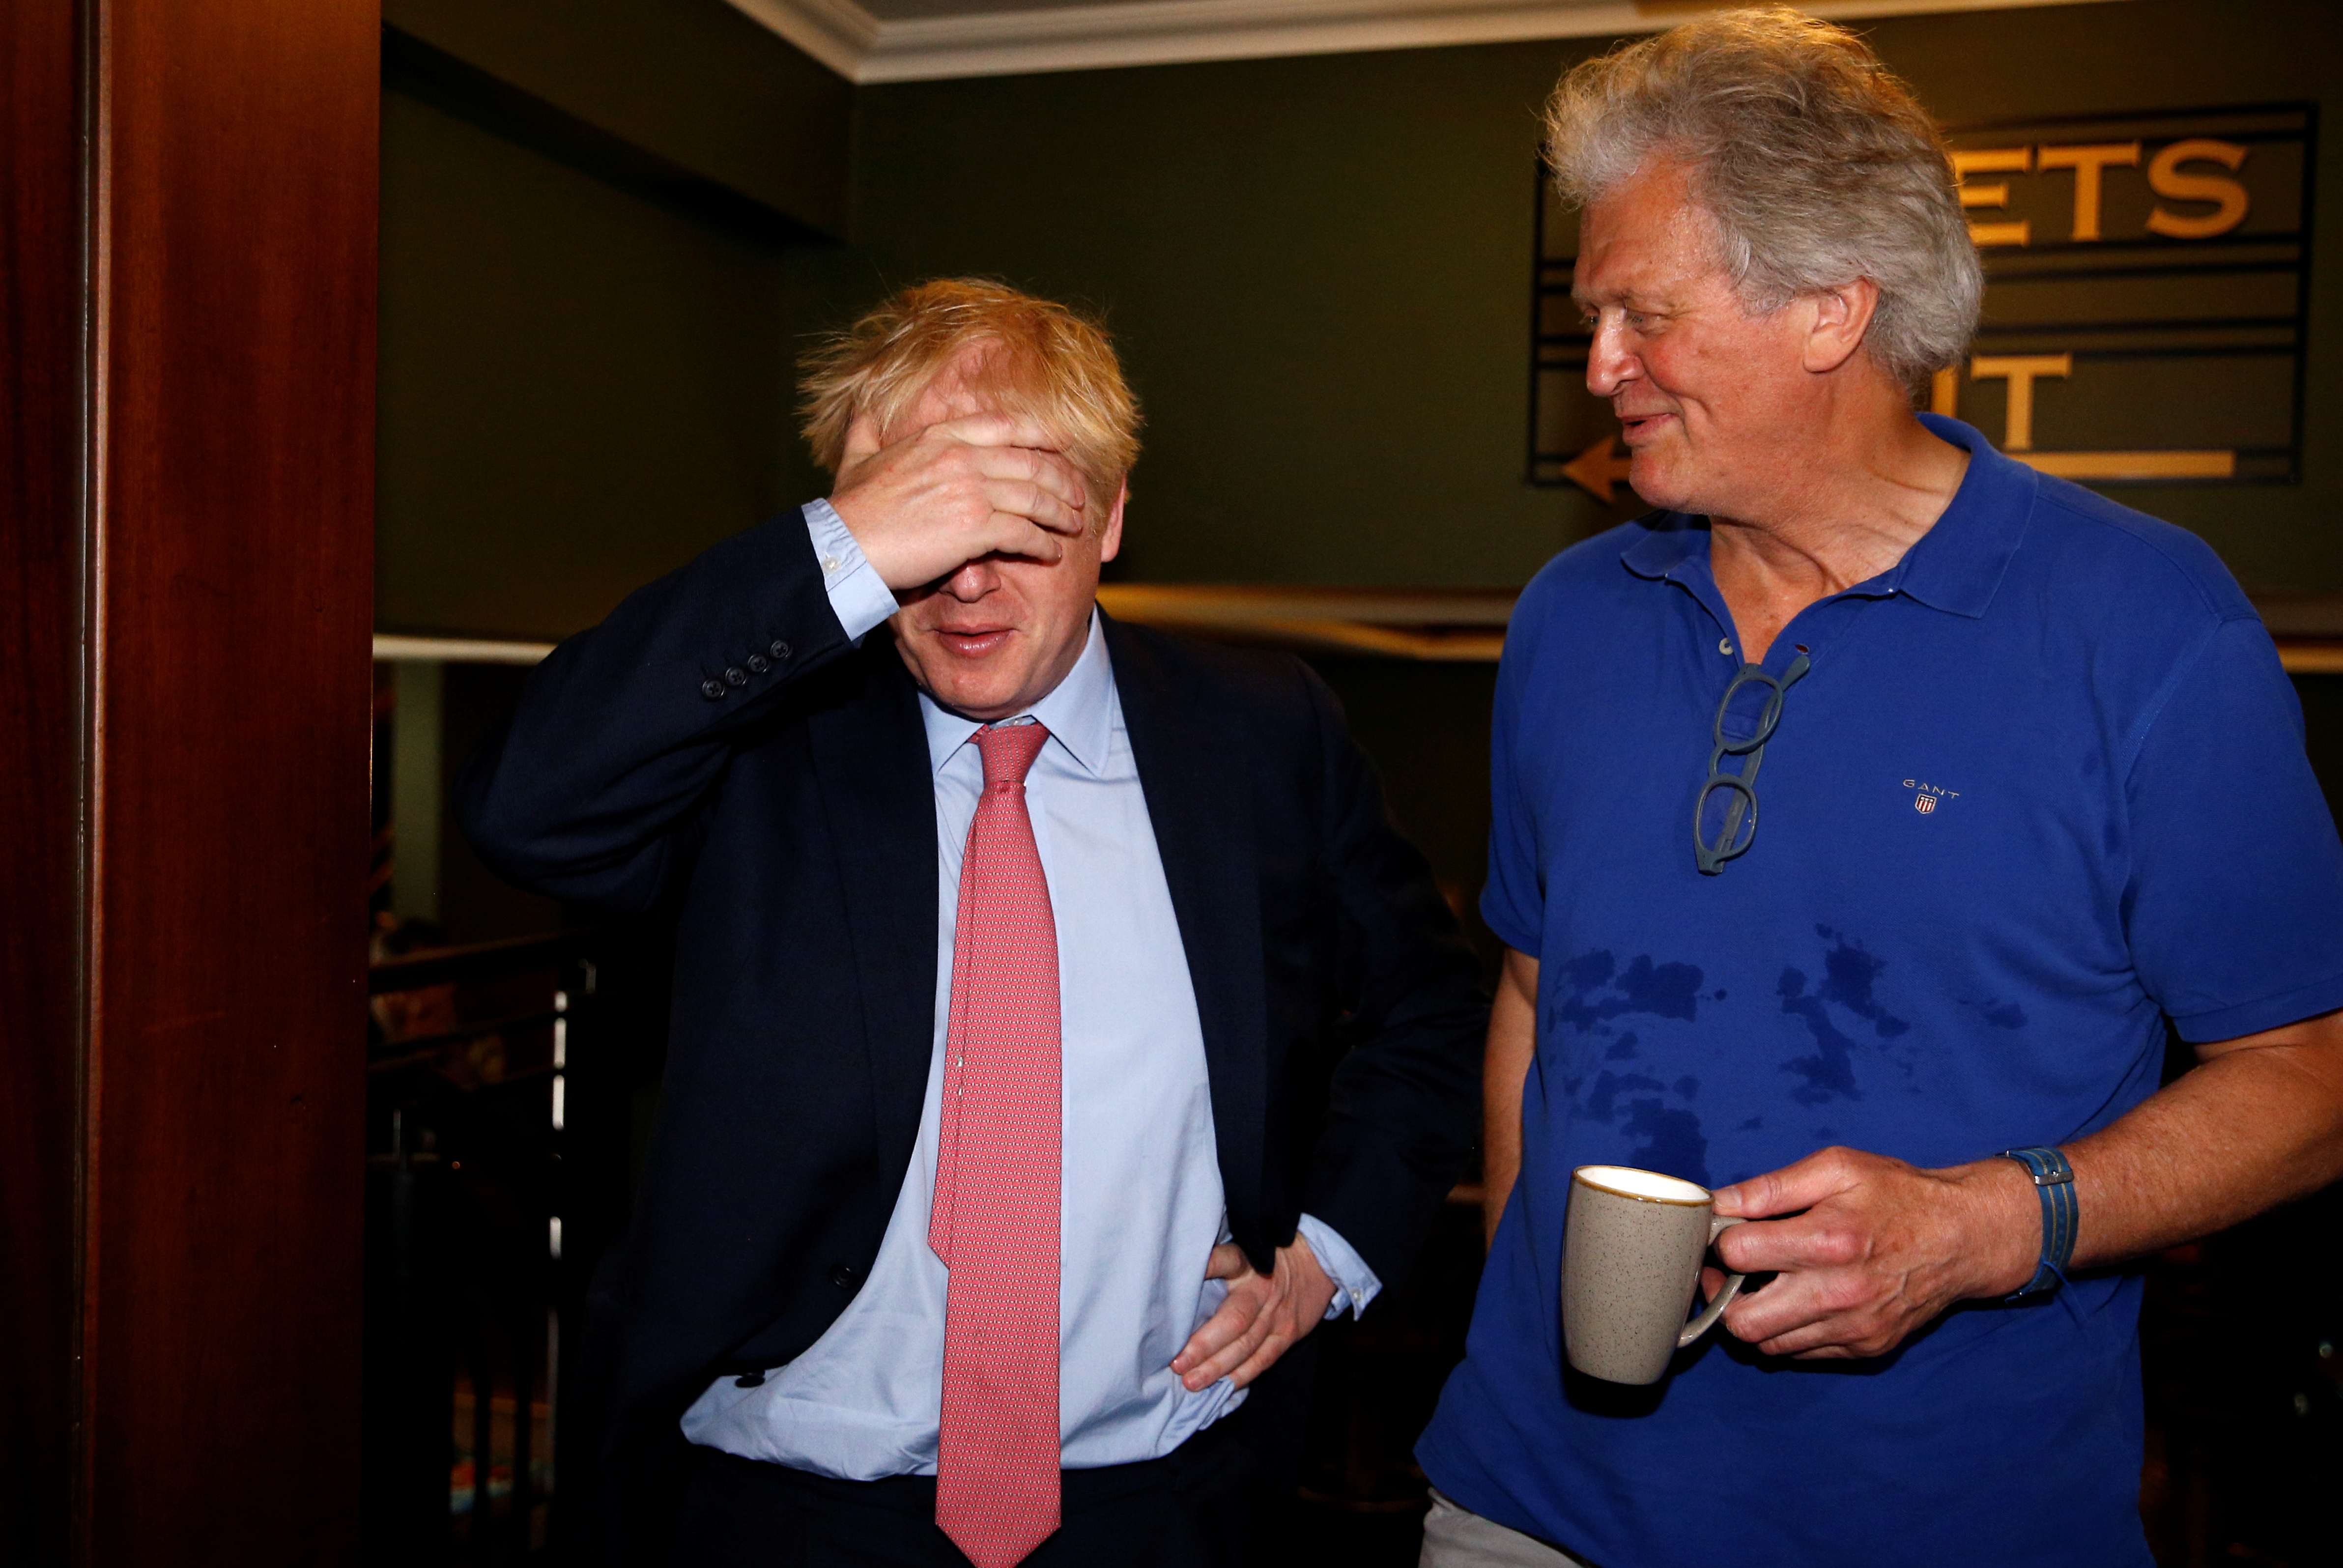 Boris Johnson covers his face while Campaigning In Central London with Tim Martin of Wetherspoons